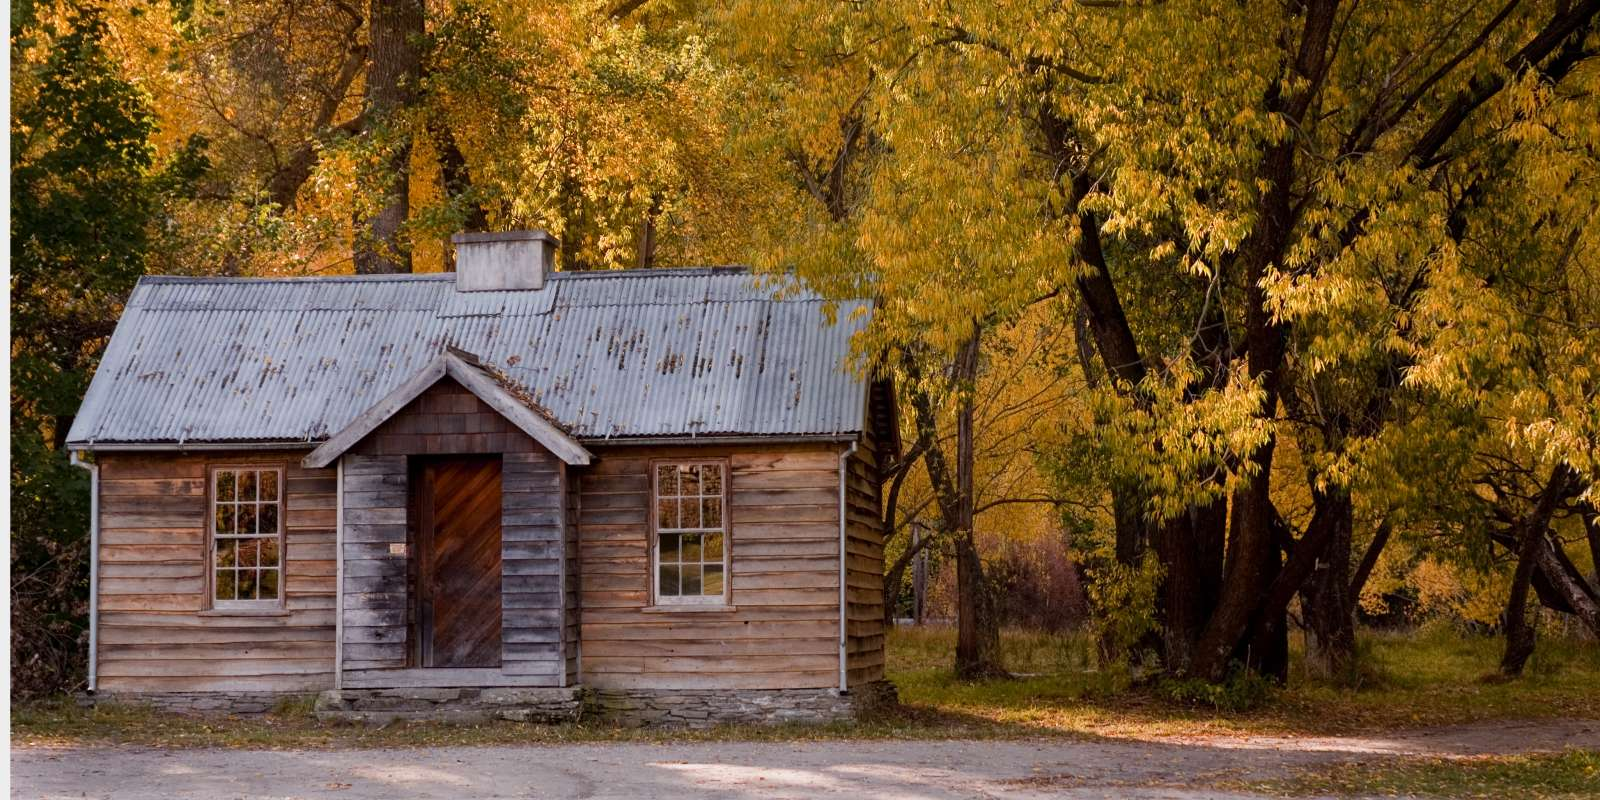 Arrowtown hut in Autumn